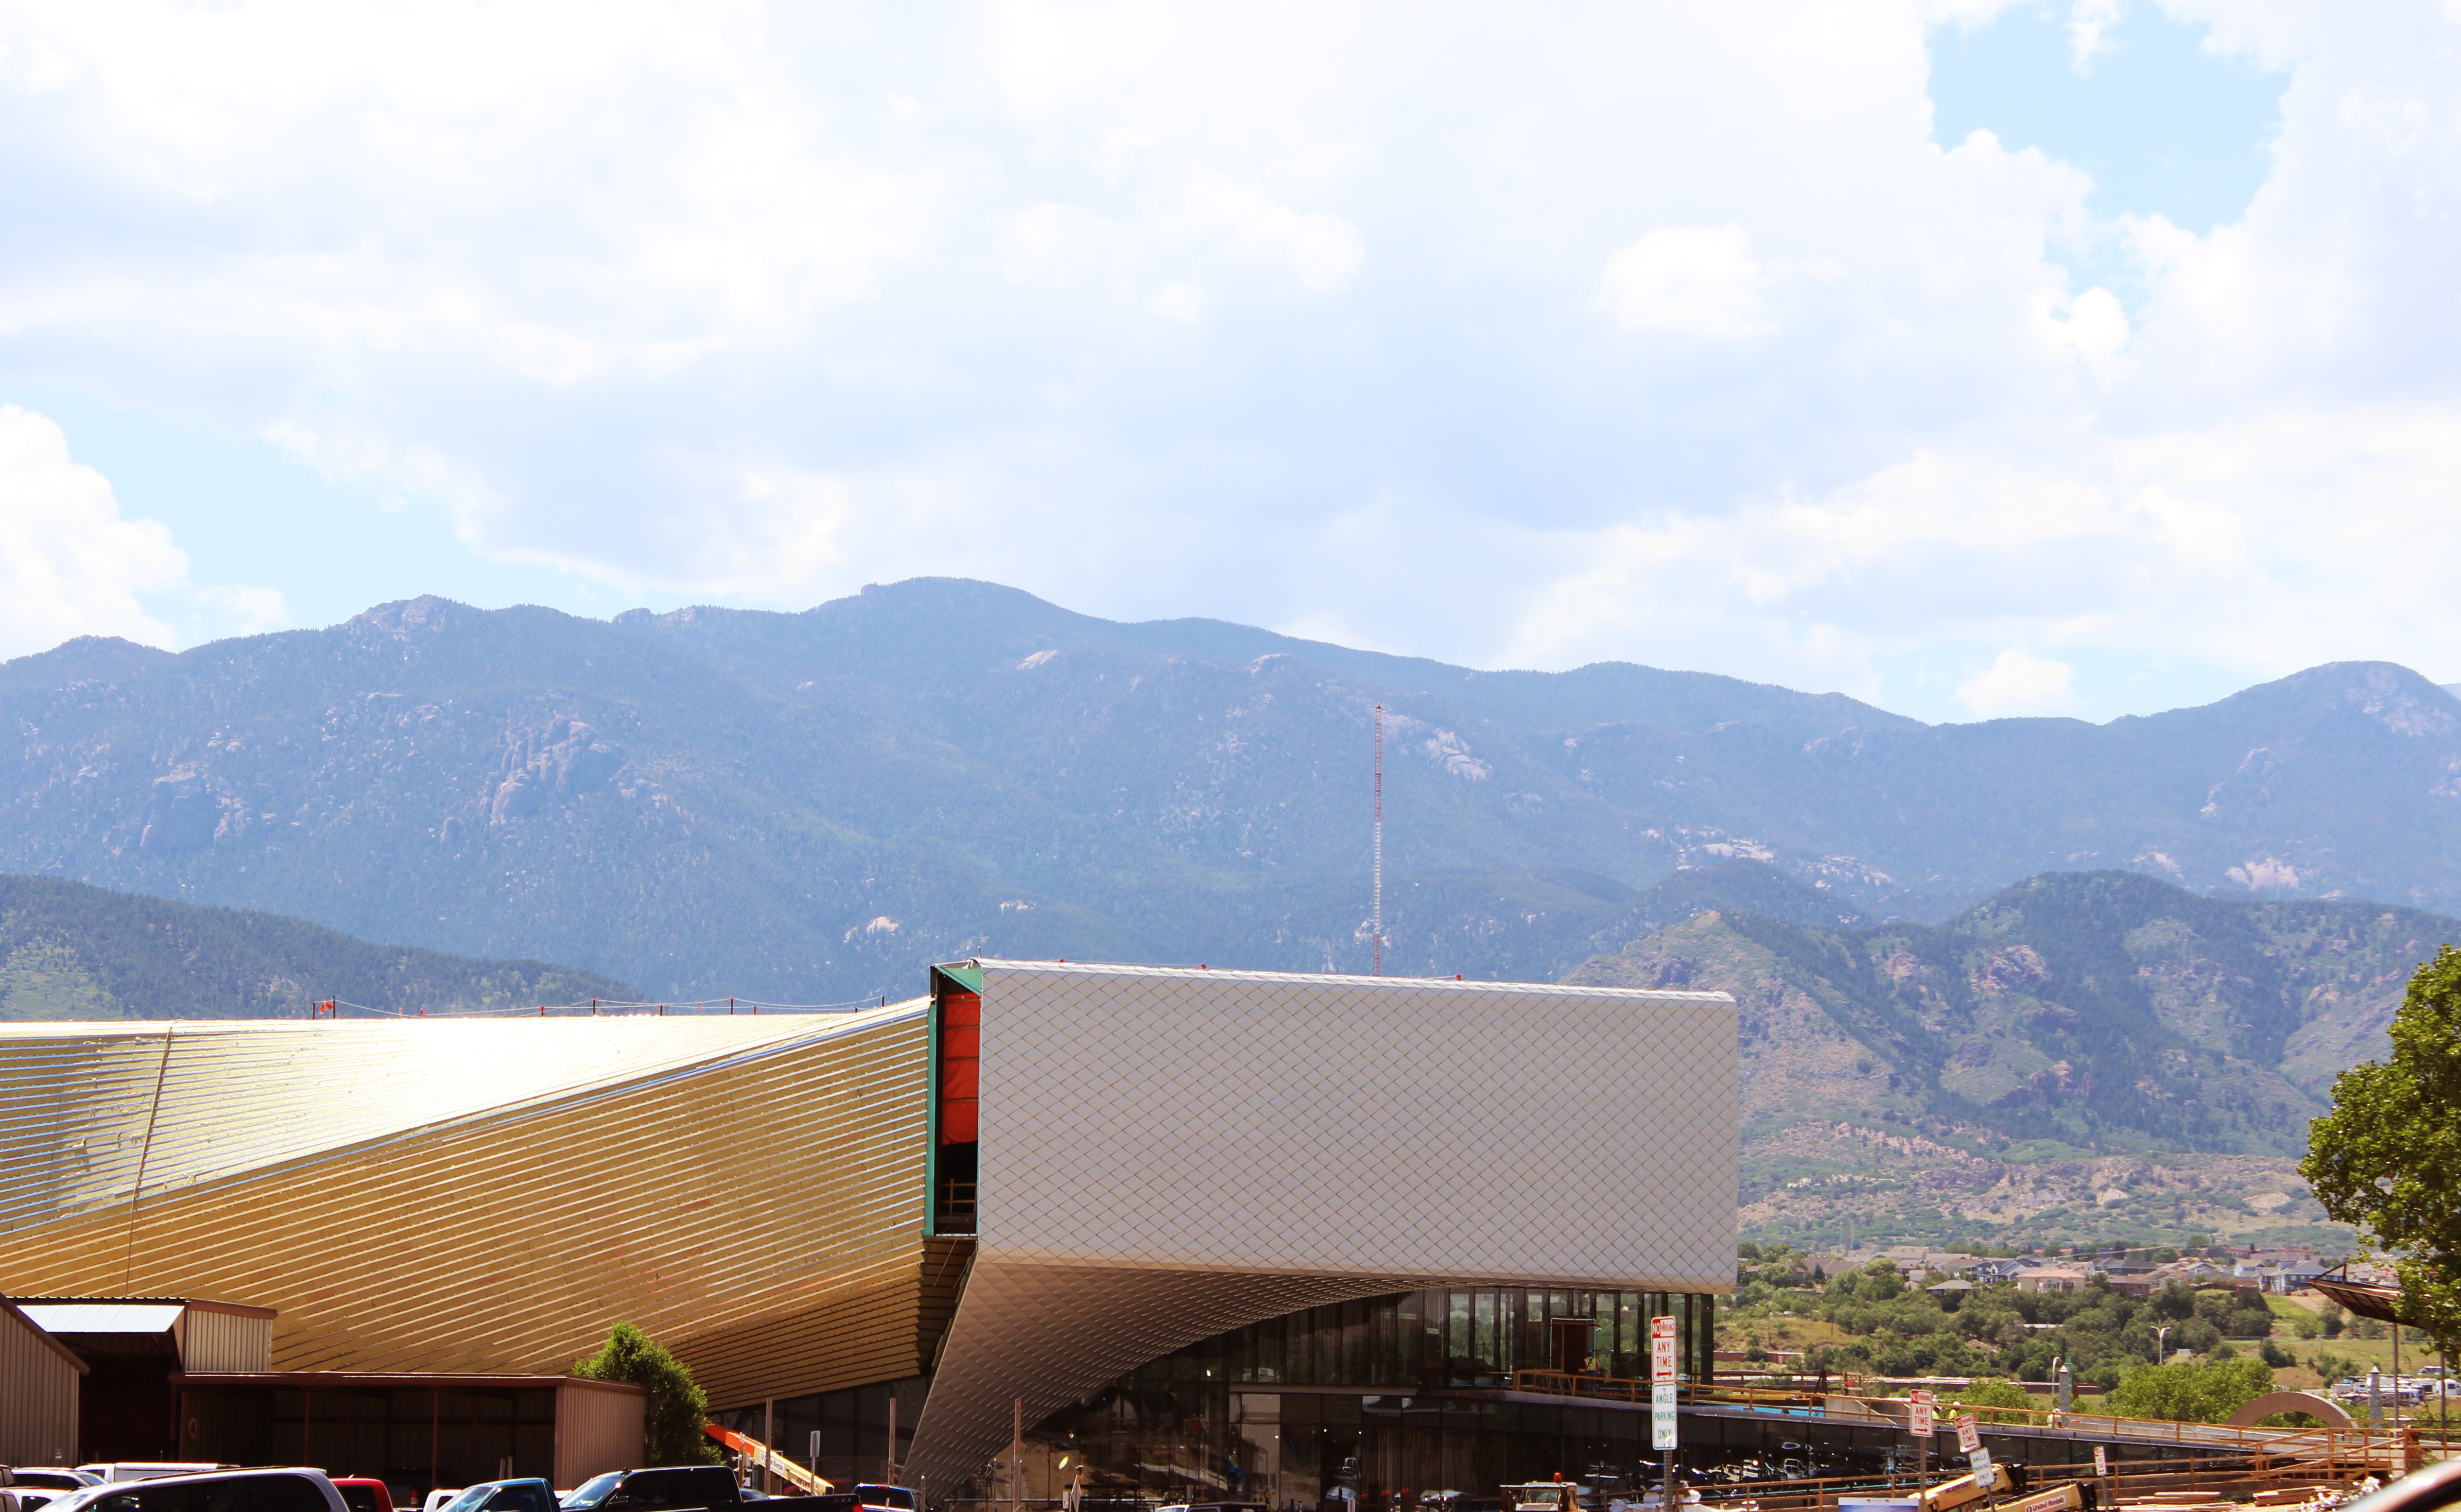 Olympic museum with mountains in the background